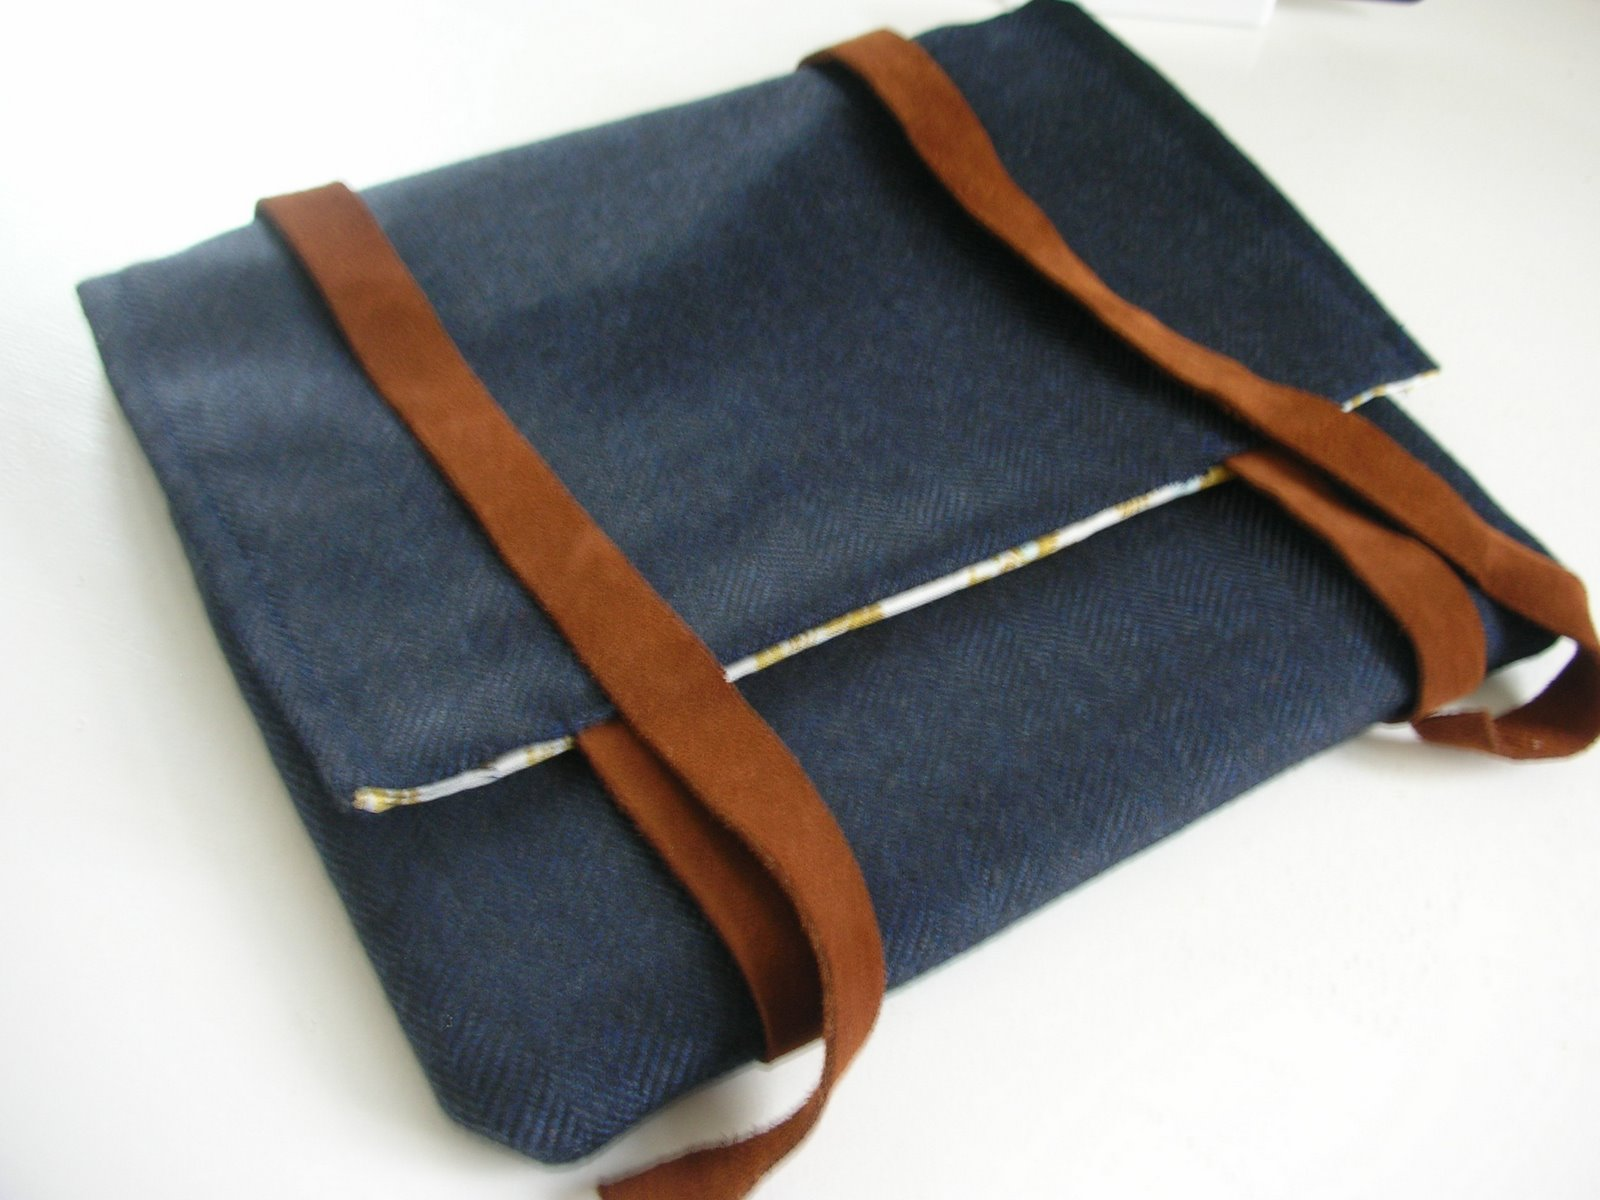 do not tell on your first date ipad tasche aus tweed stoff. Black Bedroom Furniture Sets. Home Design Ideas